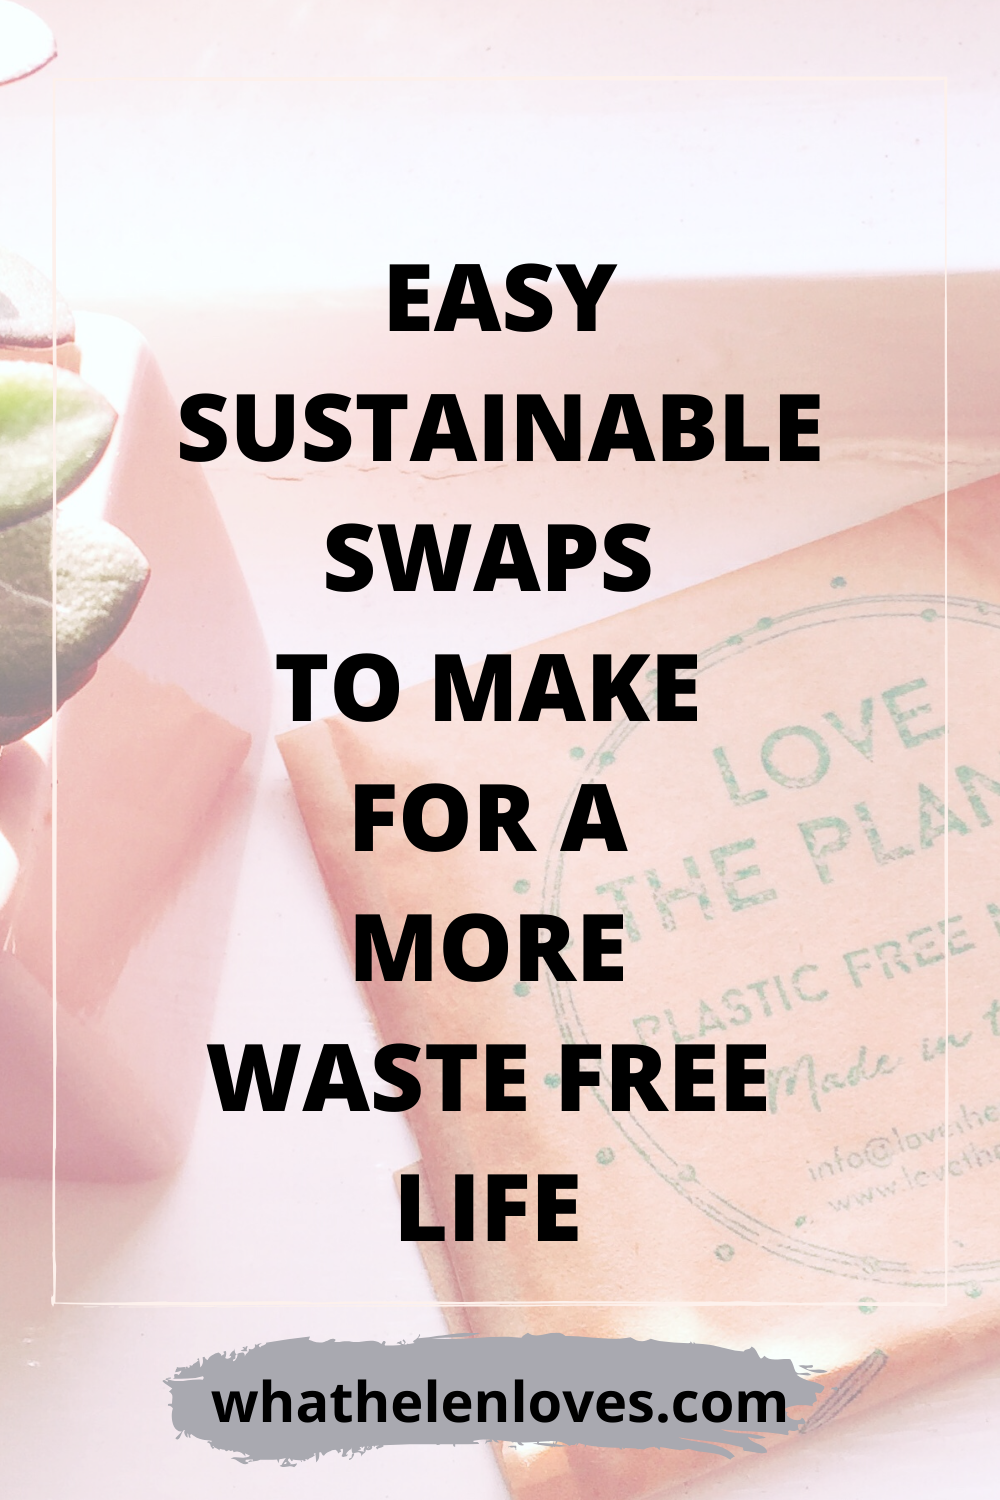 Pinterest pin for a post about easy sustainable swaps to make for a more waste-free life.